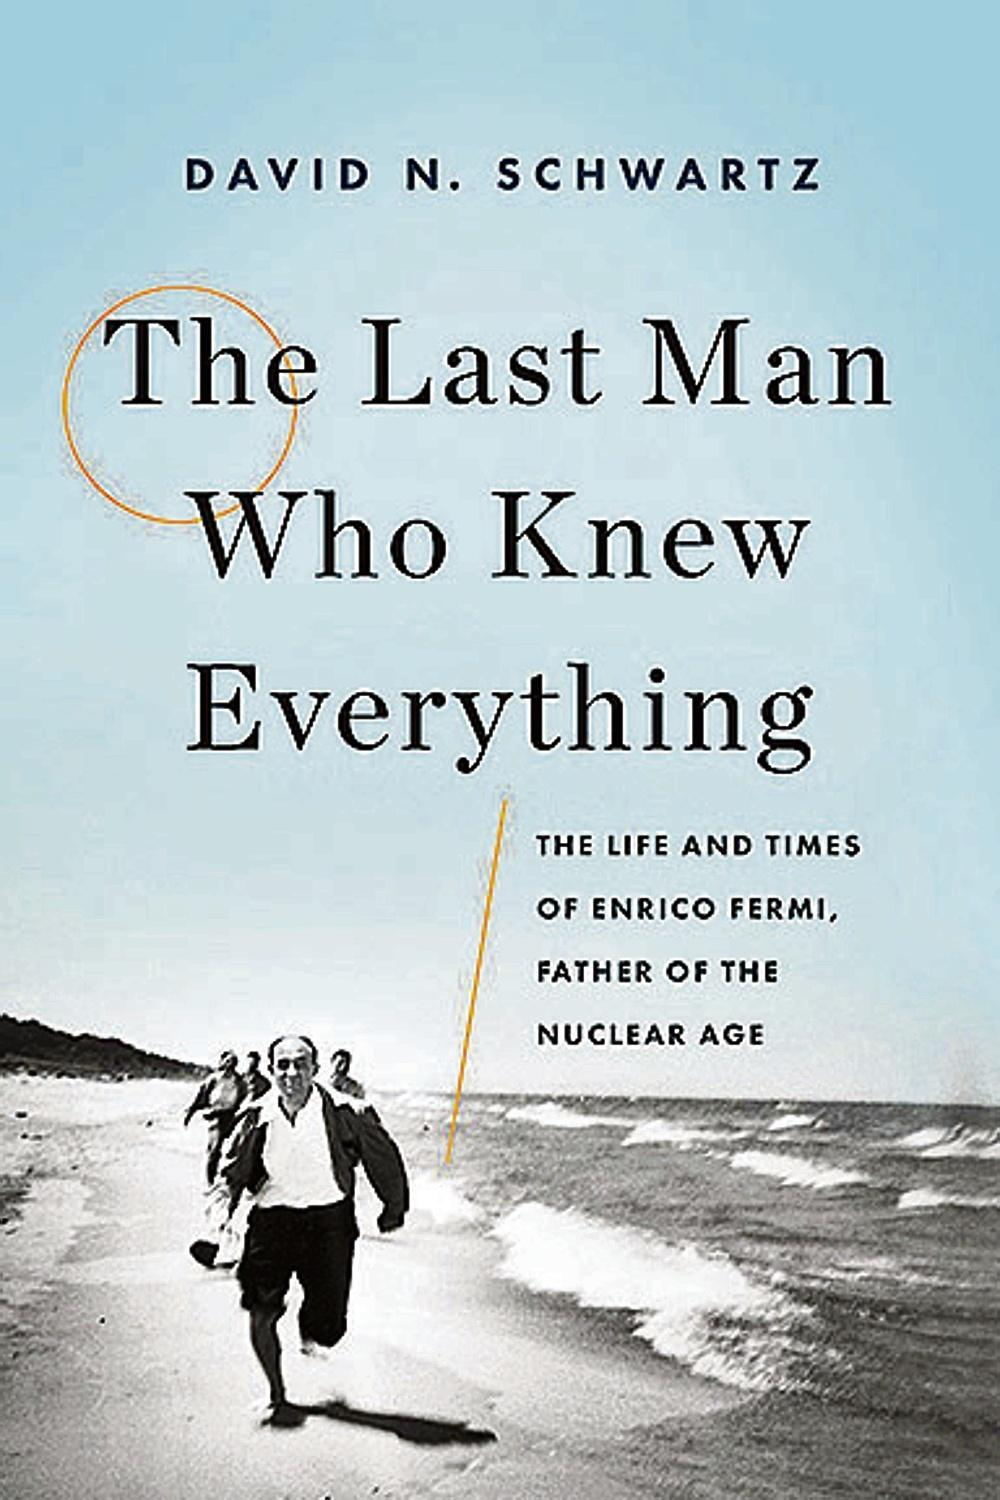 Download ebook The Last Man Who Knew Everything